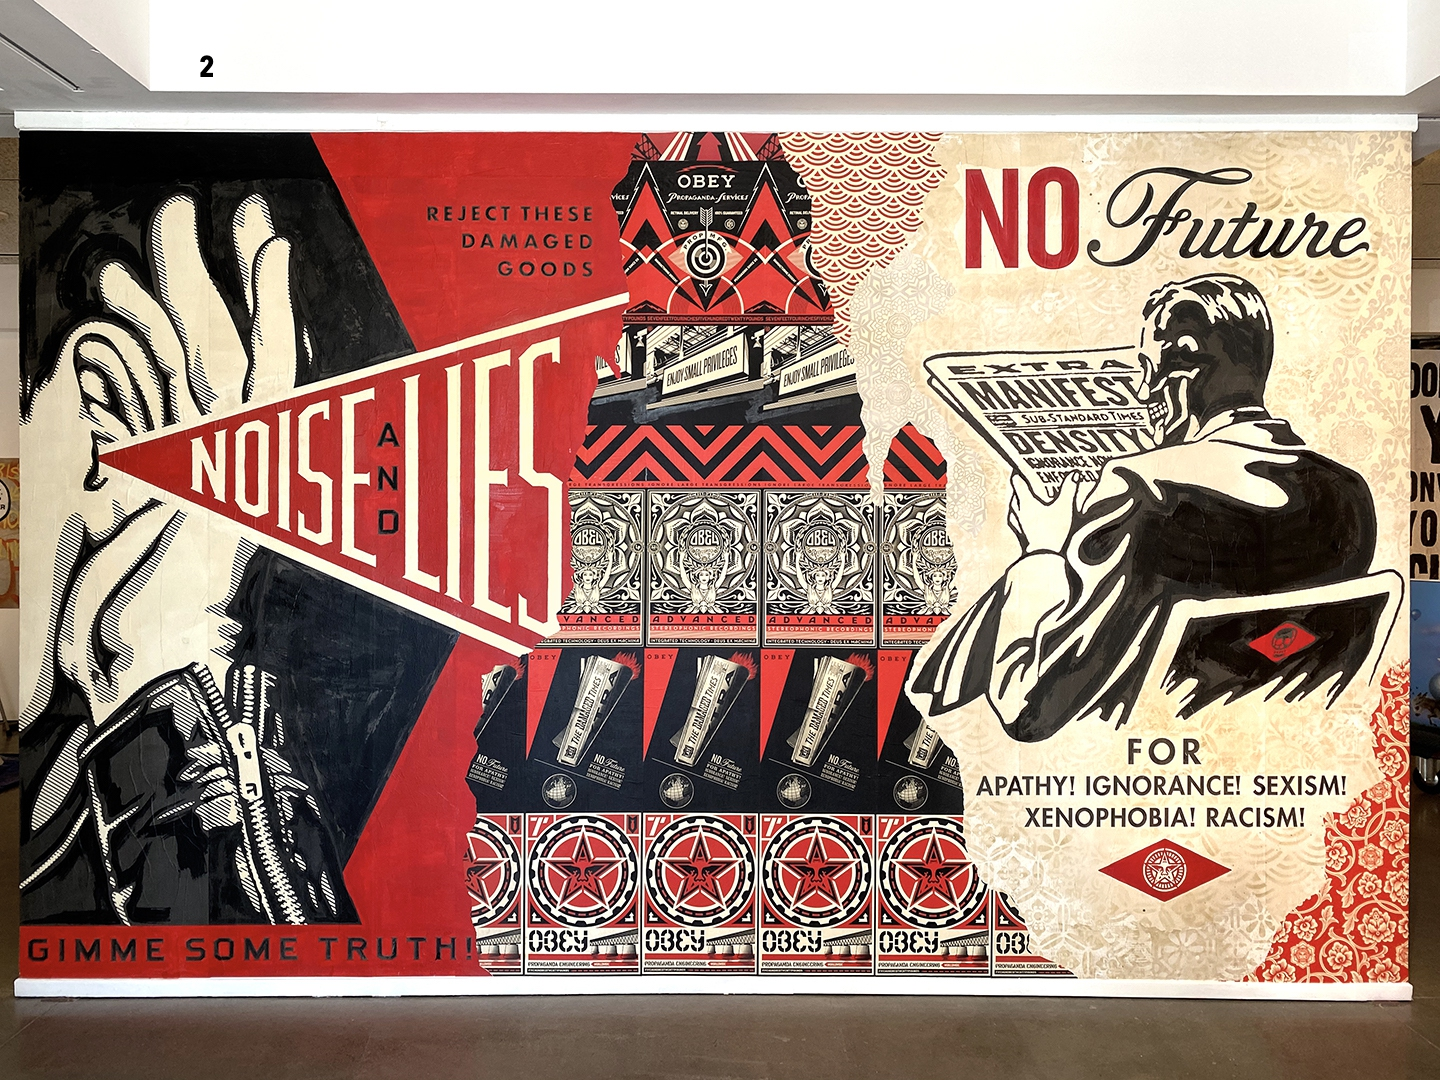 Noise & Lies by Shepard Fairey